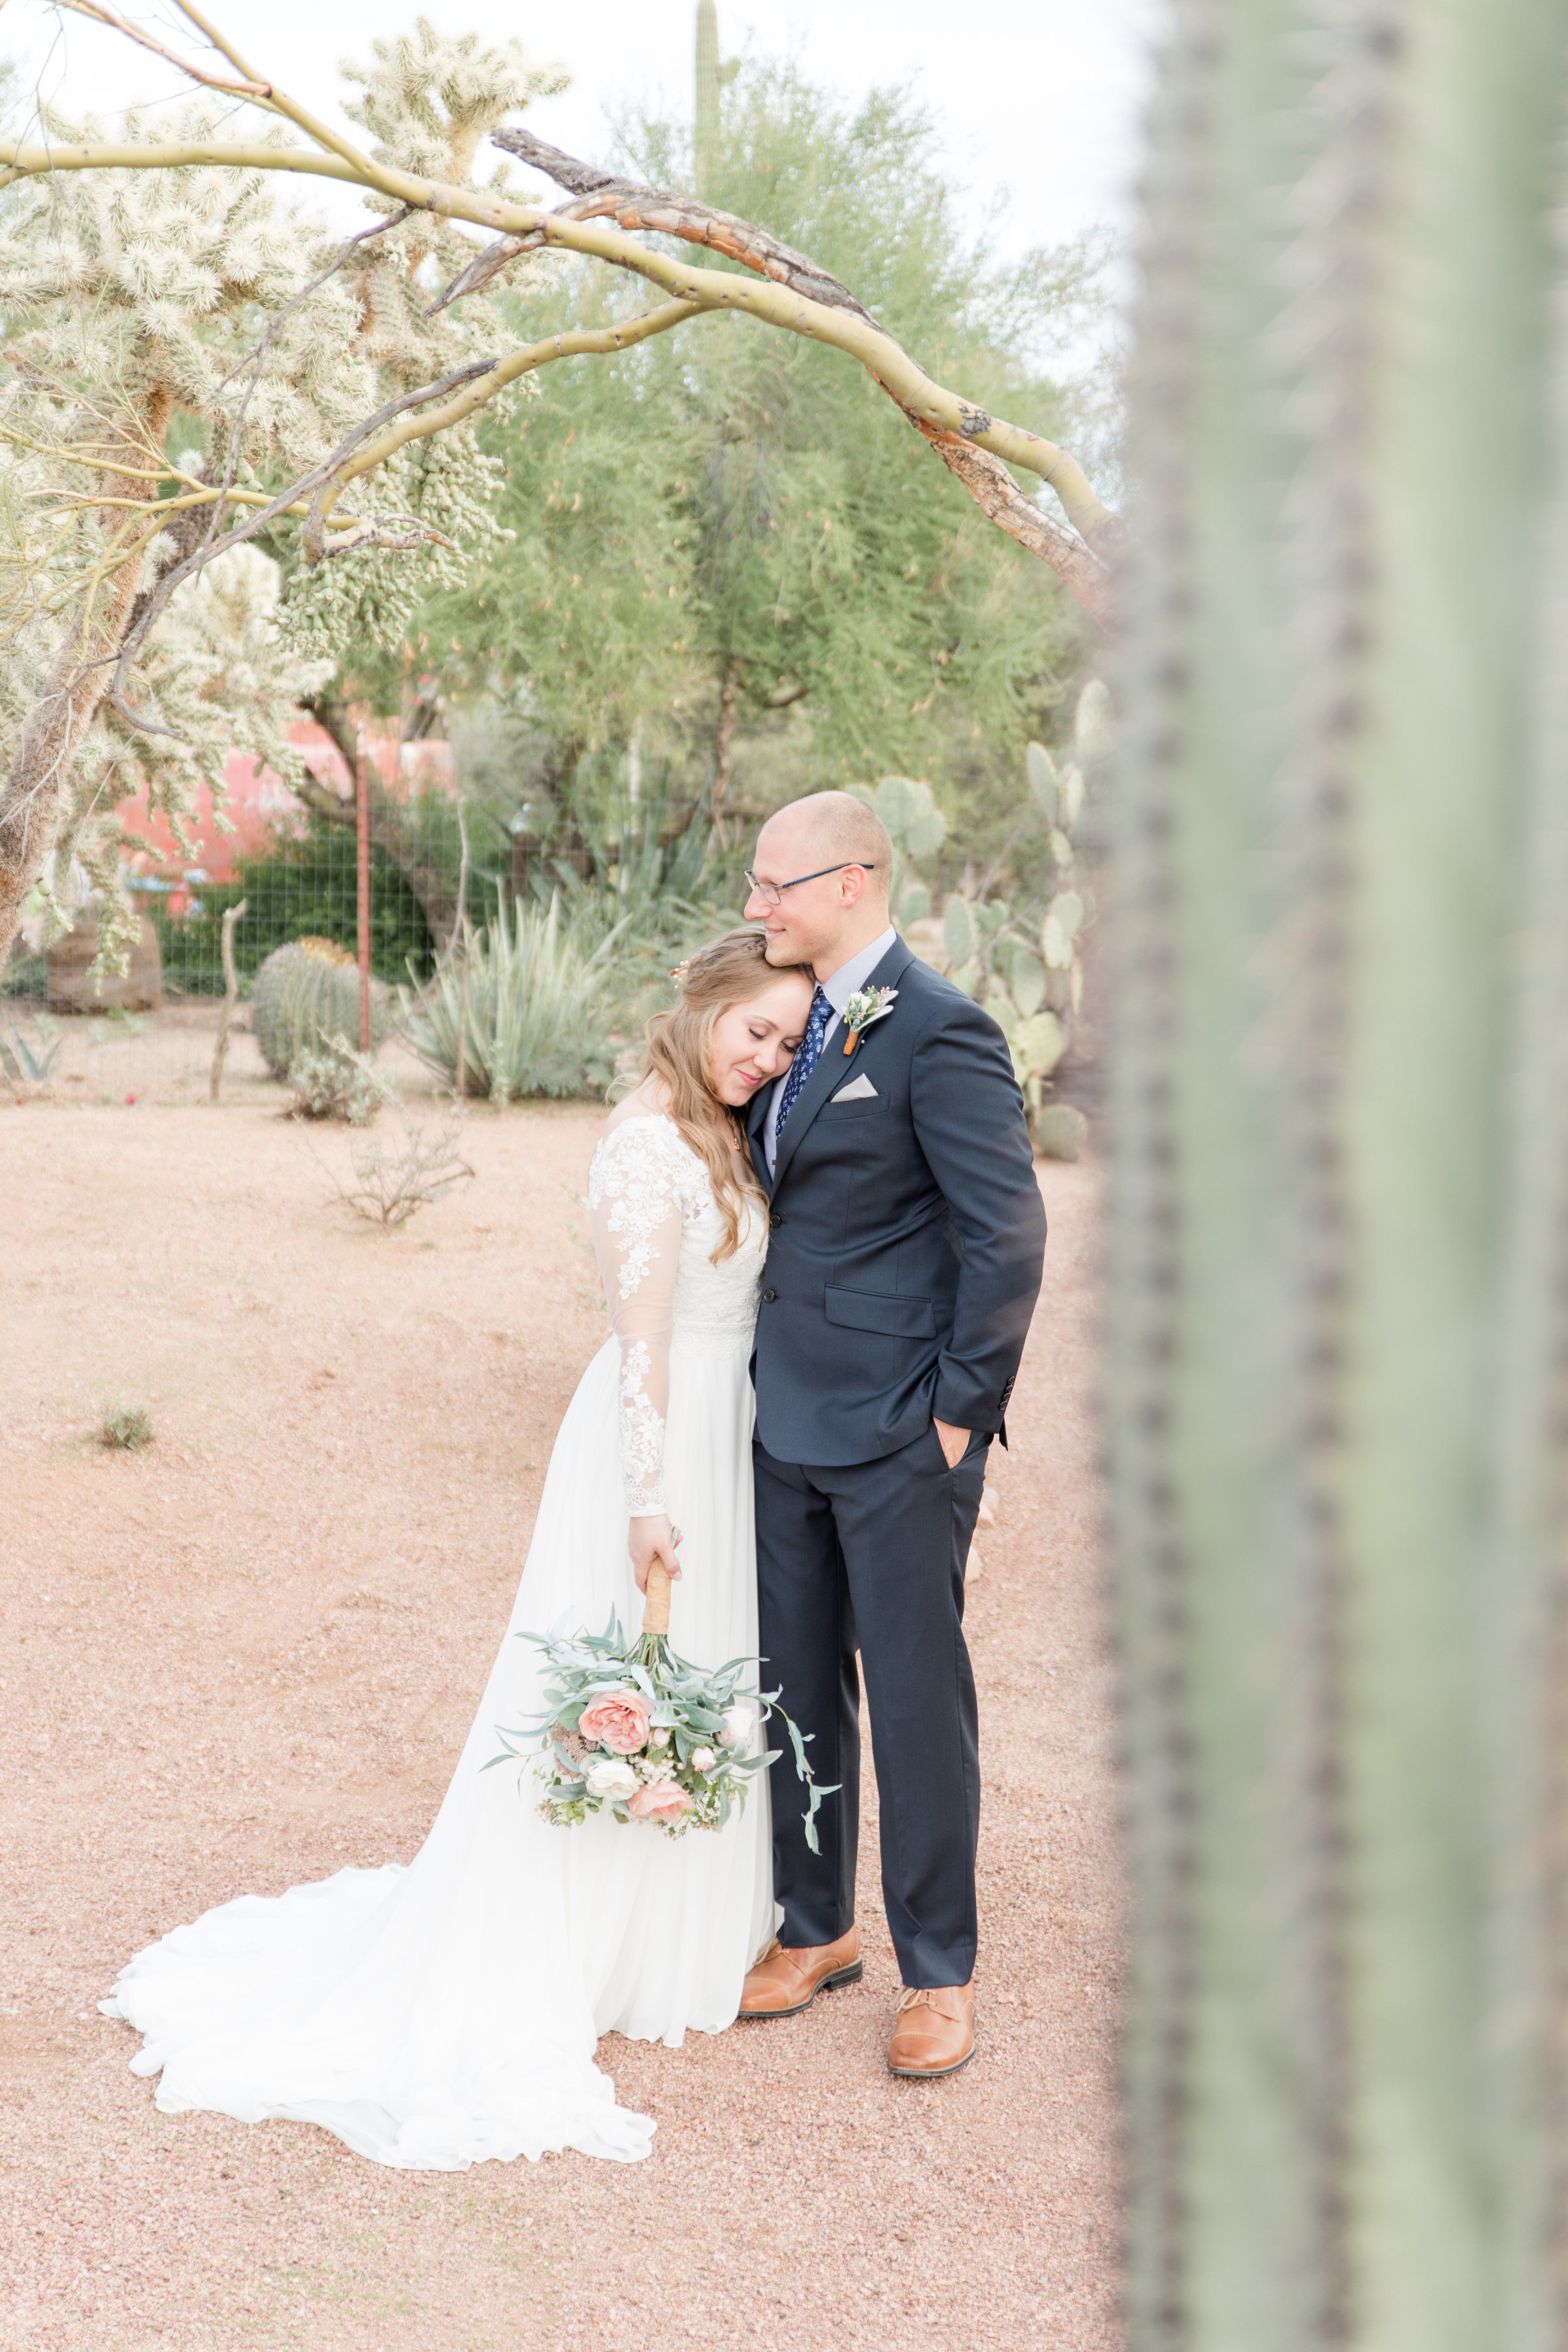 Bride and groom at their desert wedding venue